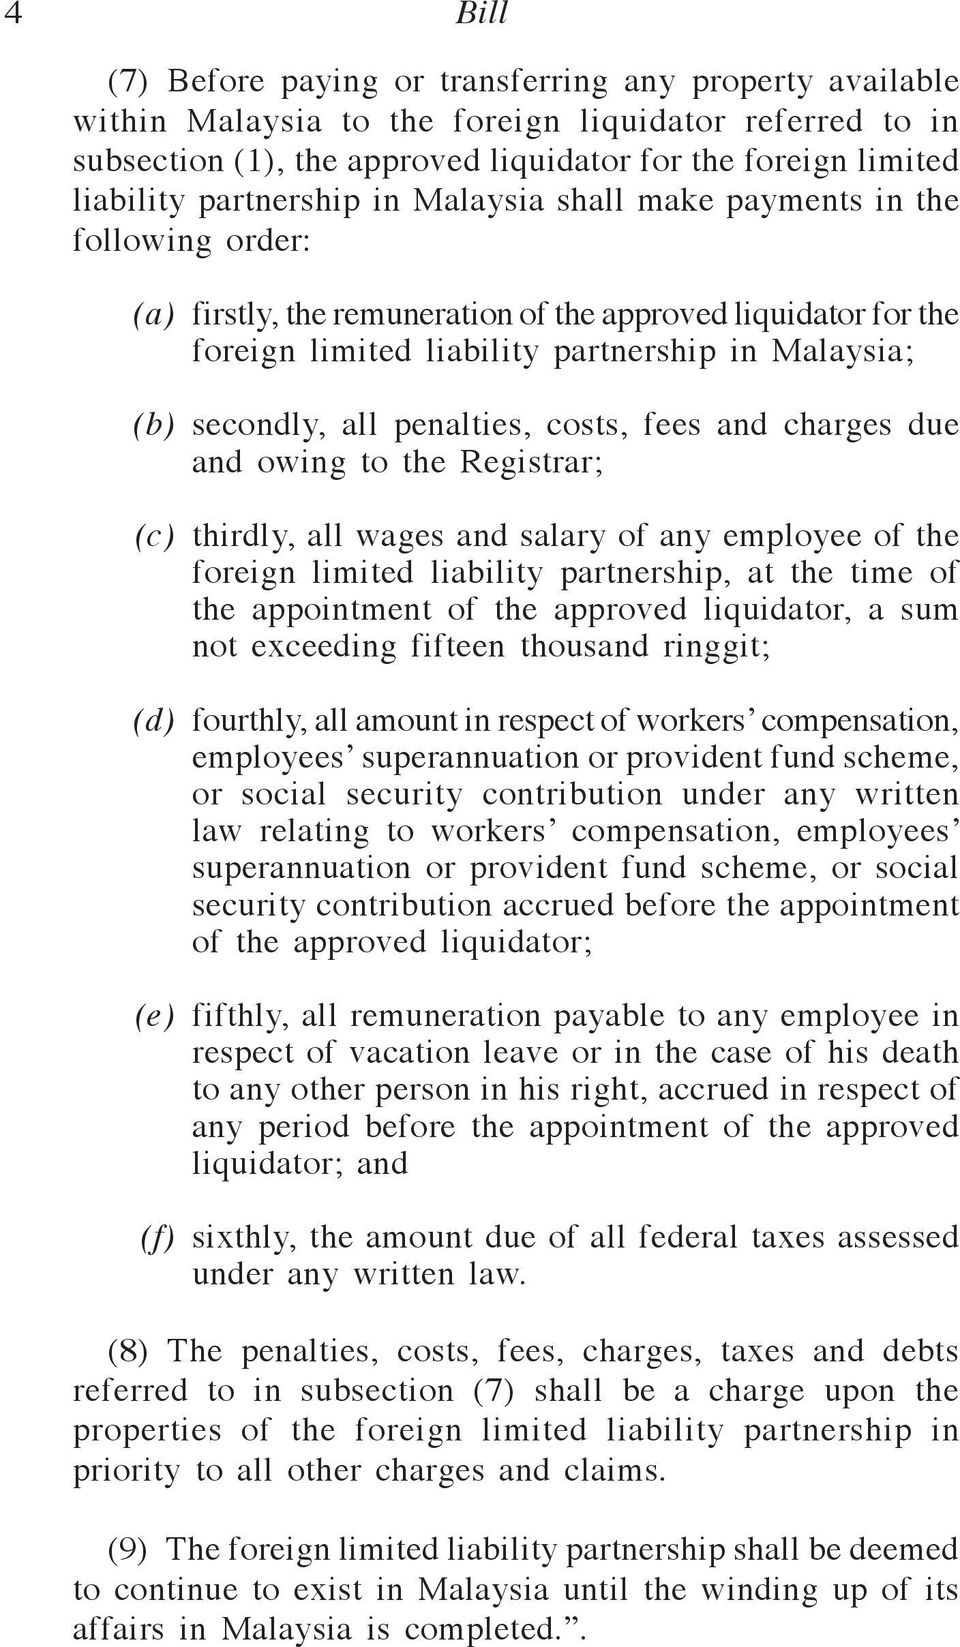 all penalties, costs, fees and charges due and owing to the Registrar; (c) thirdly, all wages and salary of any employee of the foreign limited liability partnership, at the time of the appointment